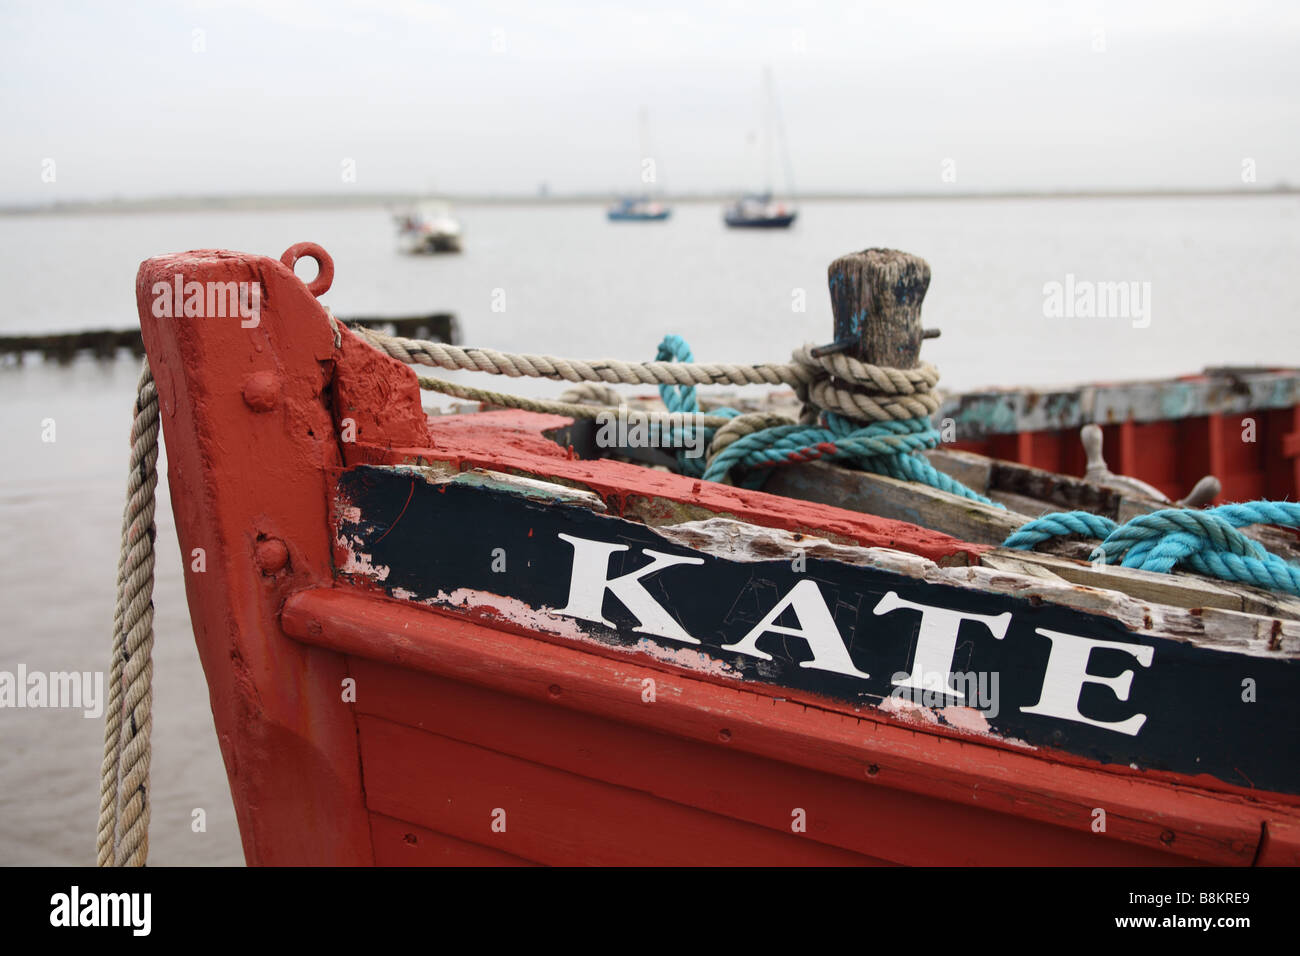 Wooden Plaque Boat Name Stock Photos Wooden Plaque Boat Name Stock